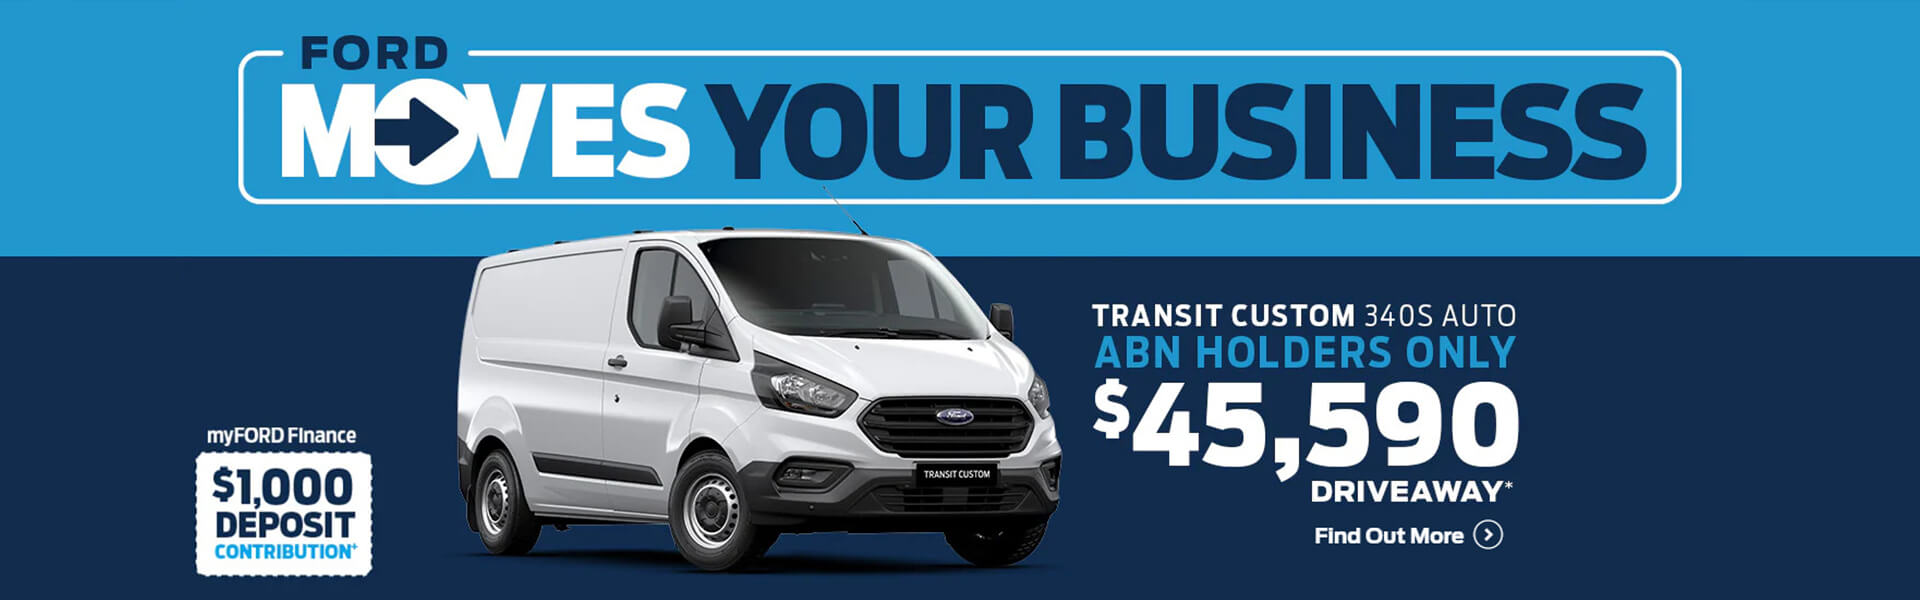 Ford moves your business. Transit Custom 340S Auto